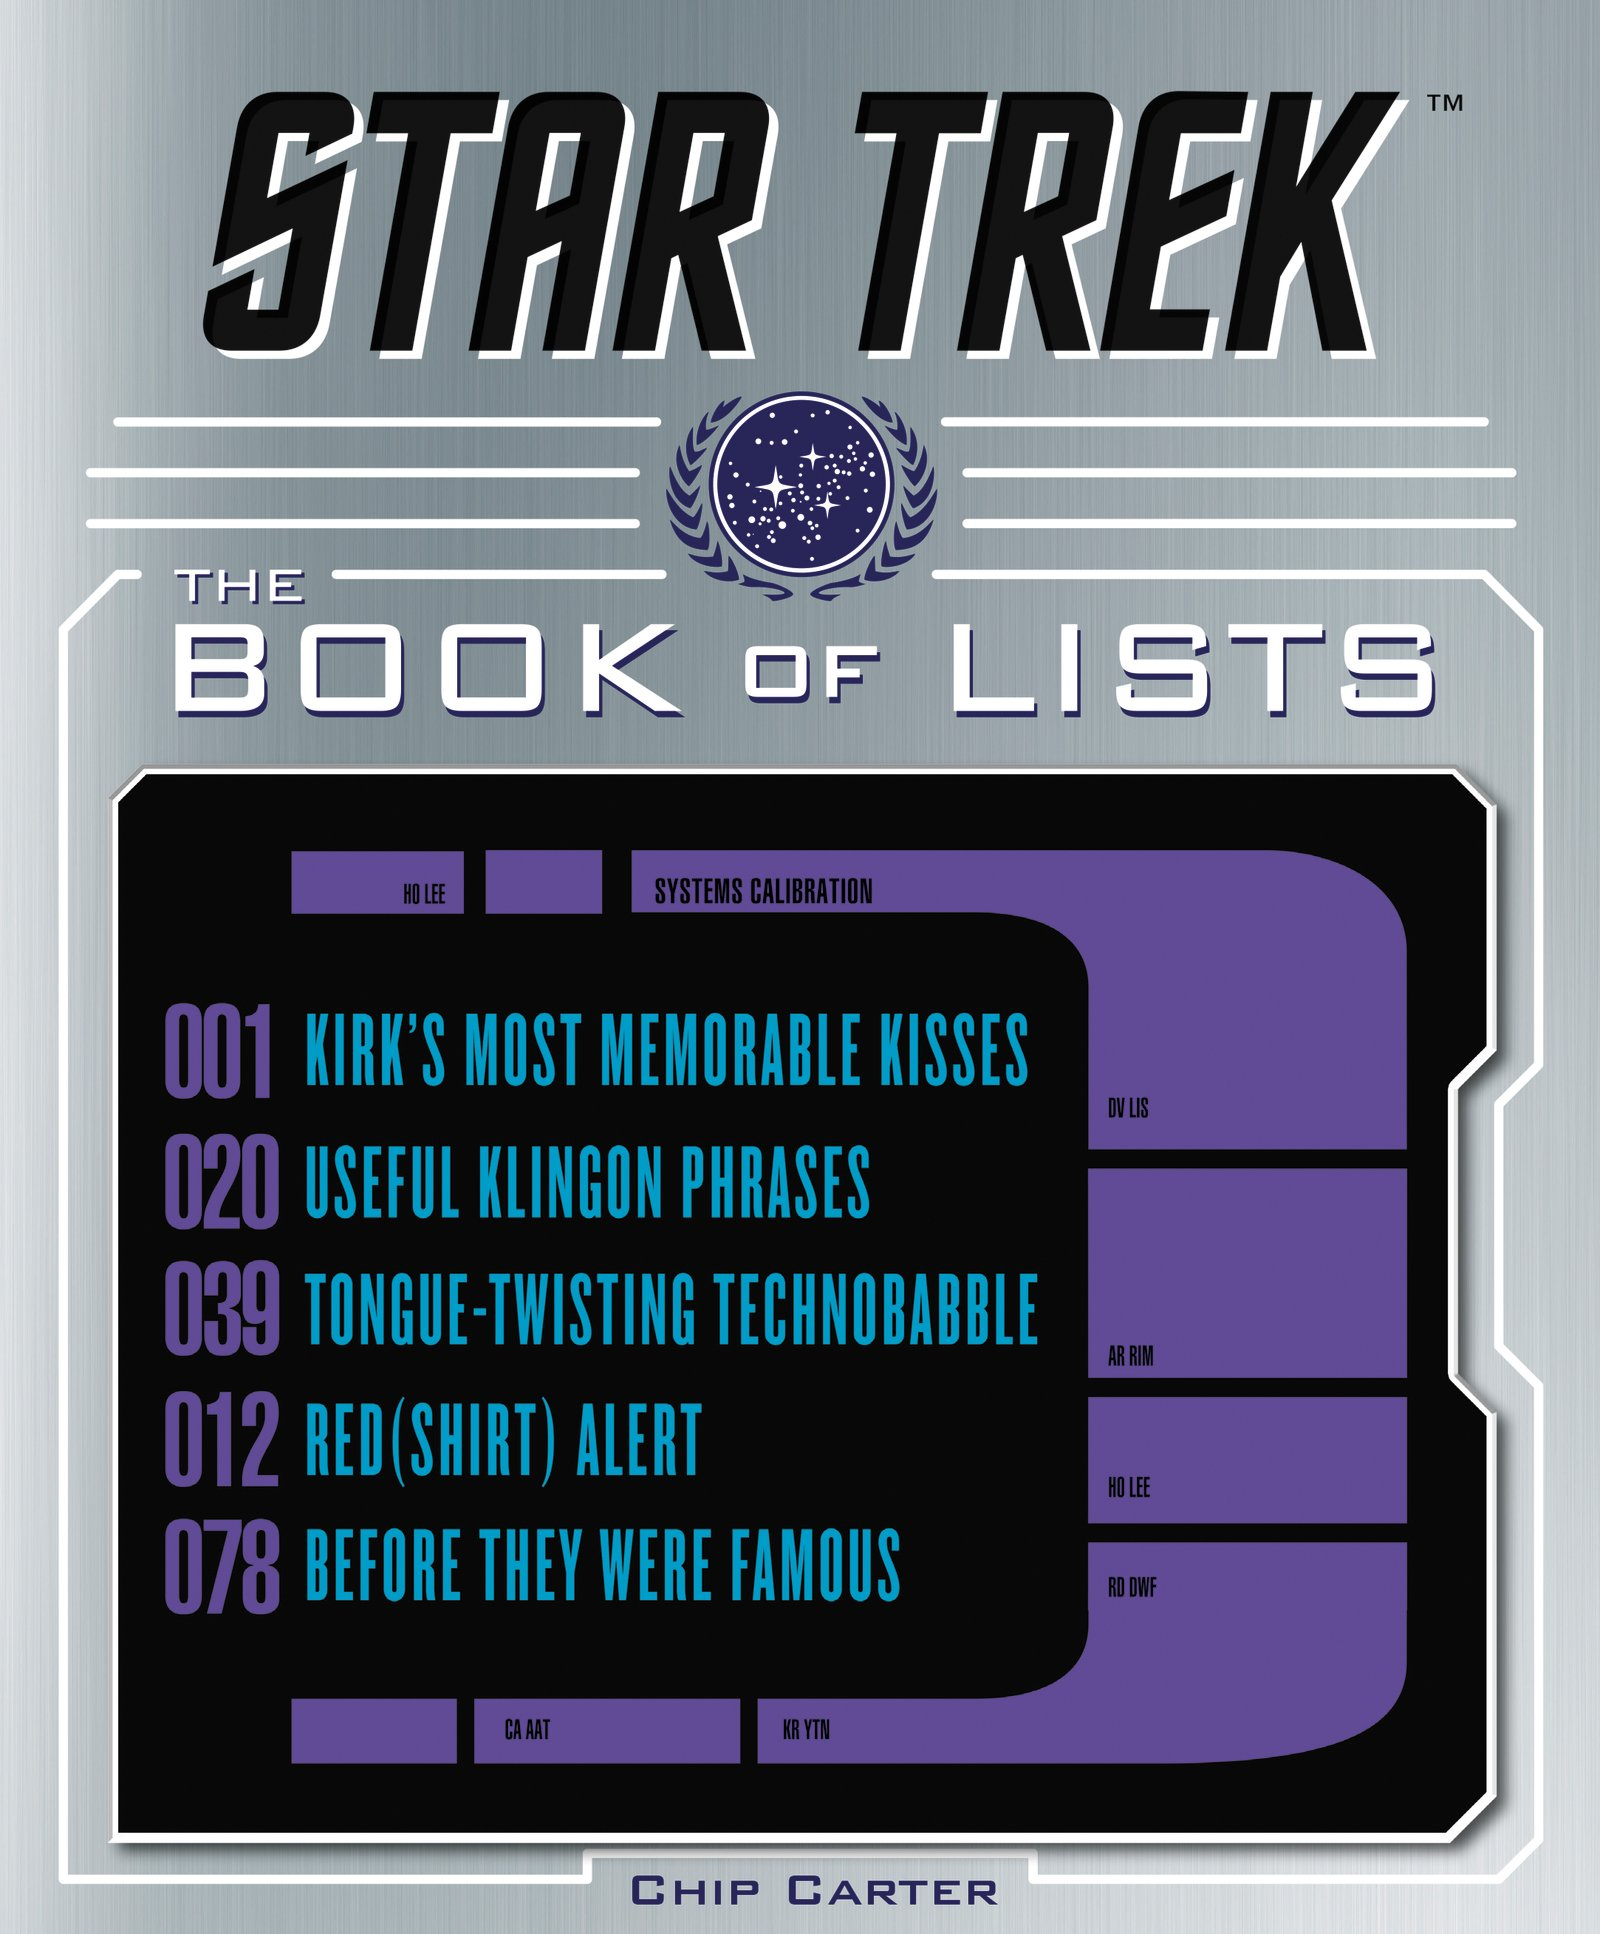 Star Trek The Book of Lists.jpg